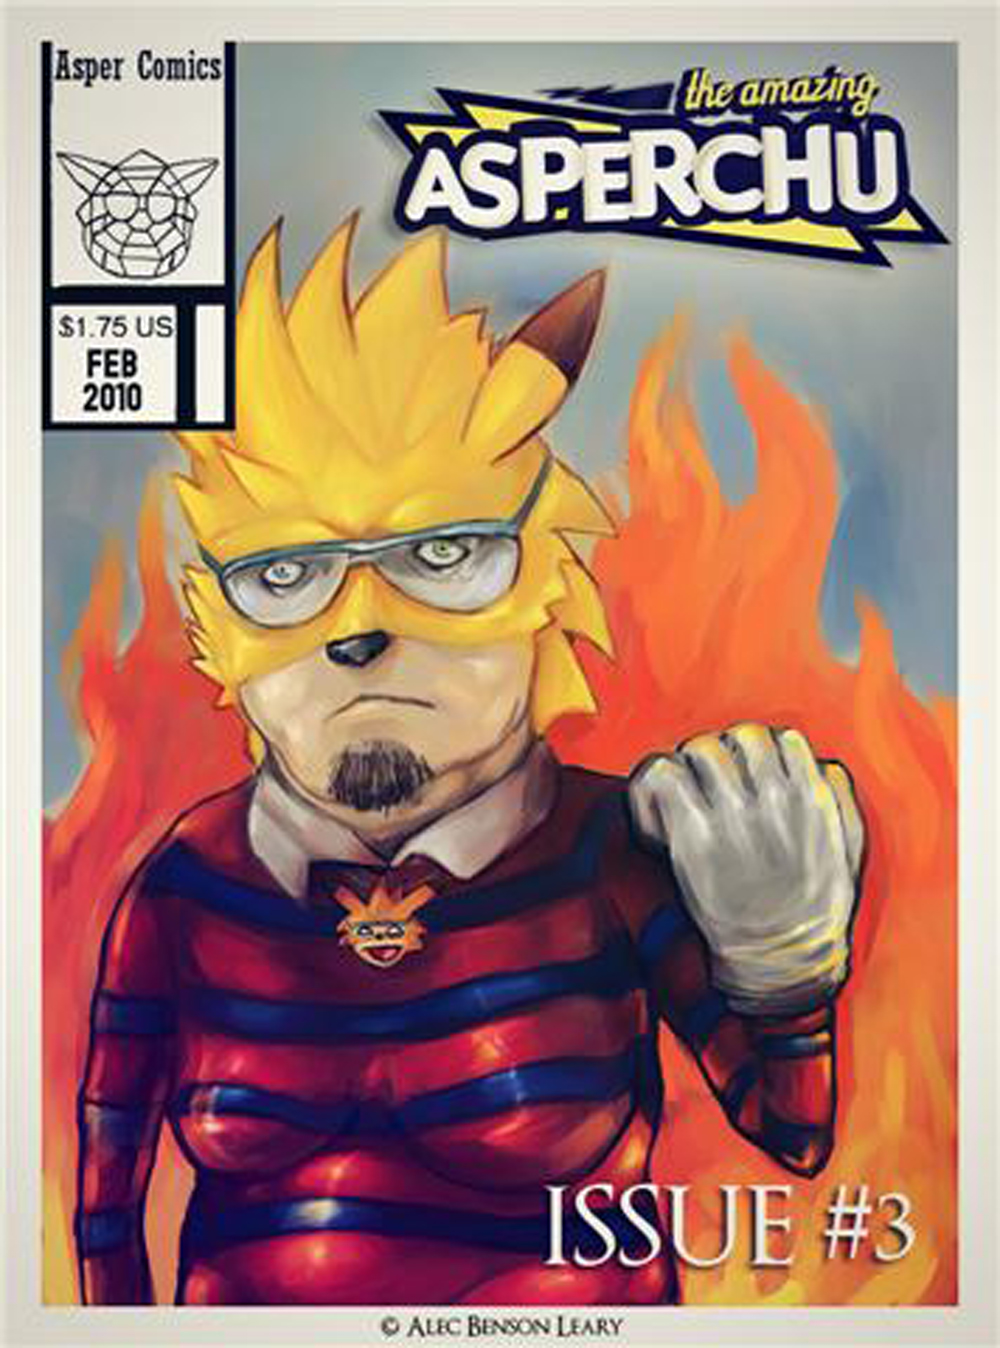 ASPERCHU Issue #3 Cover